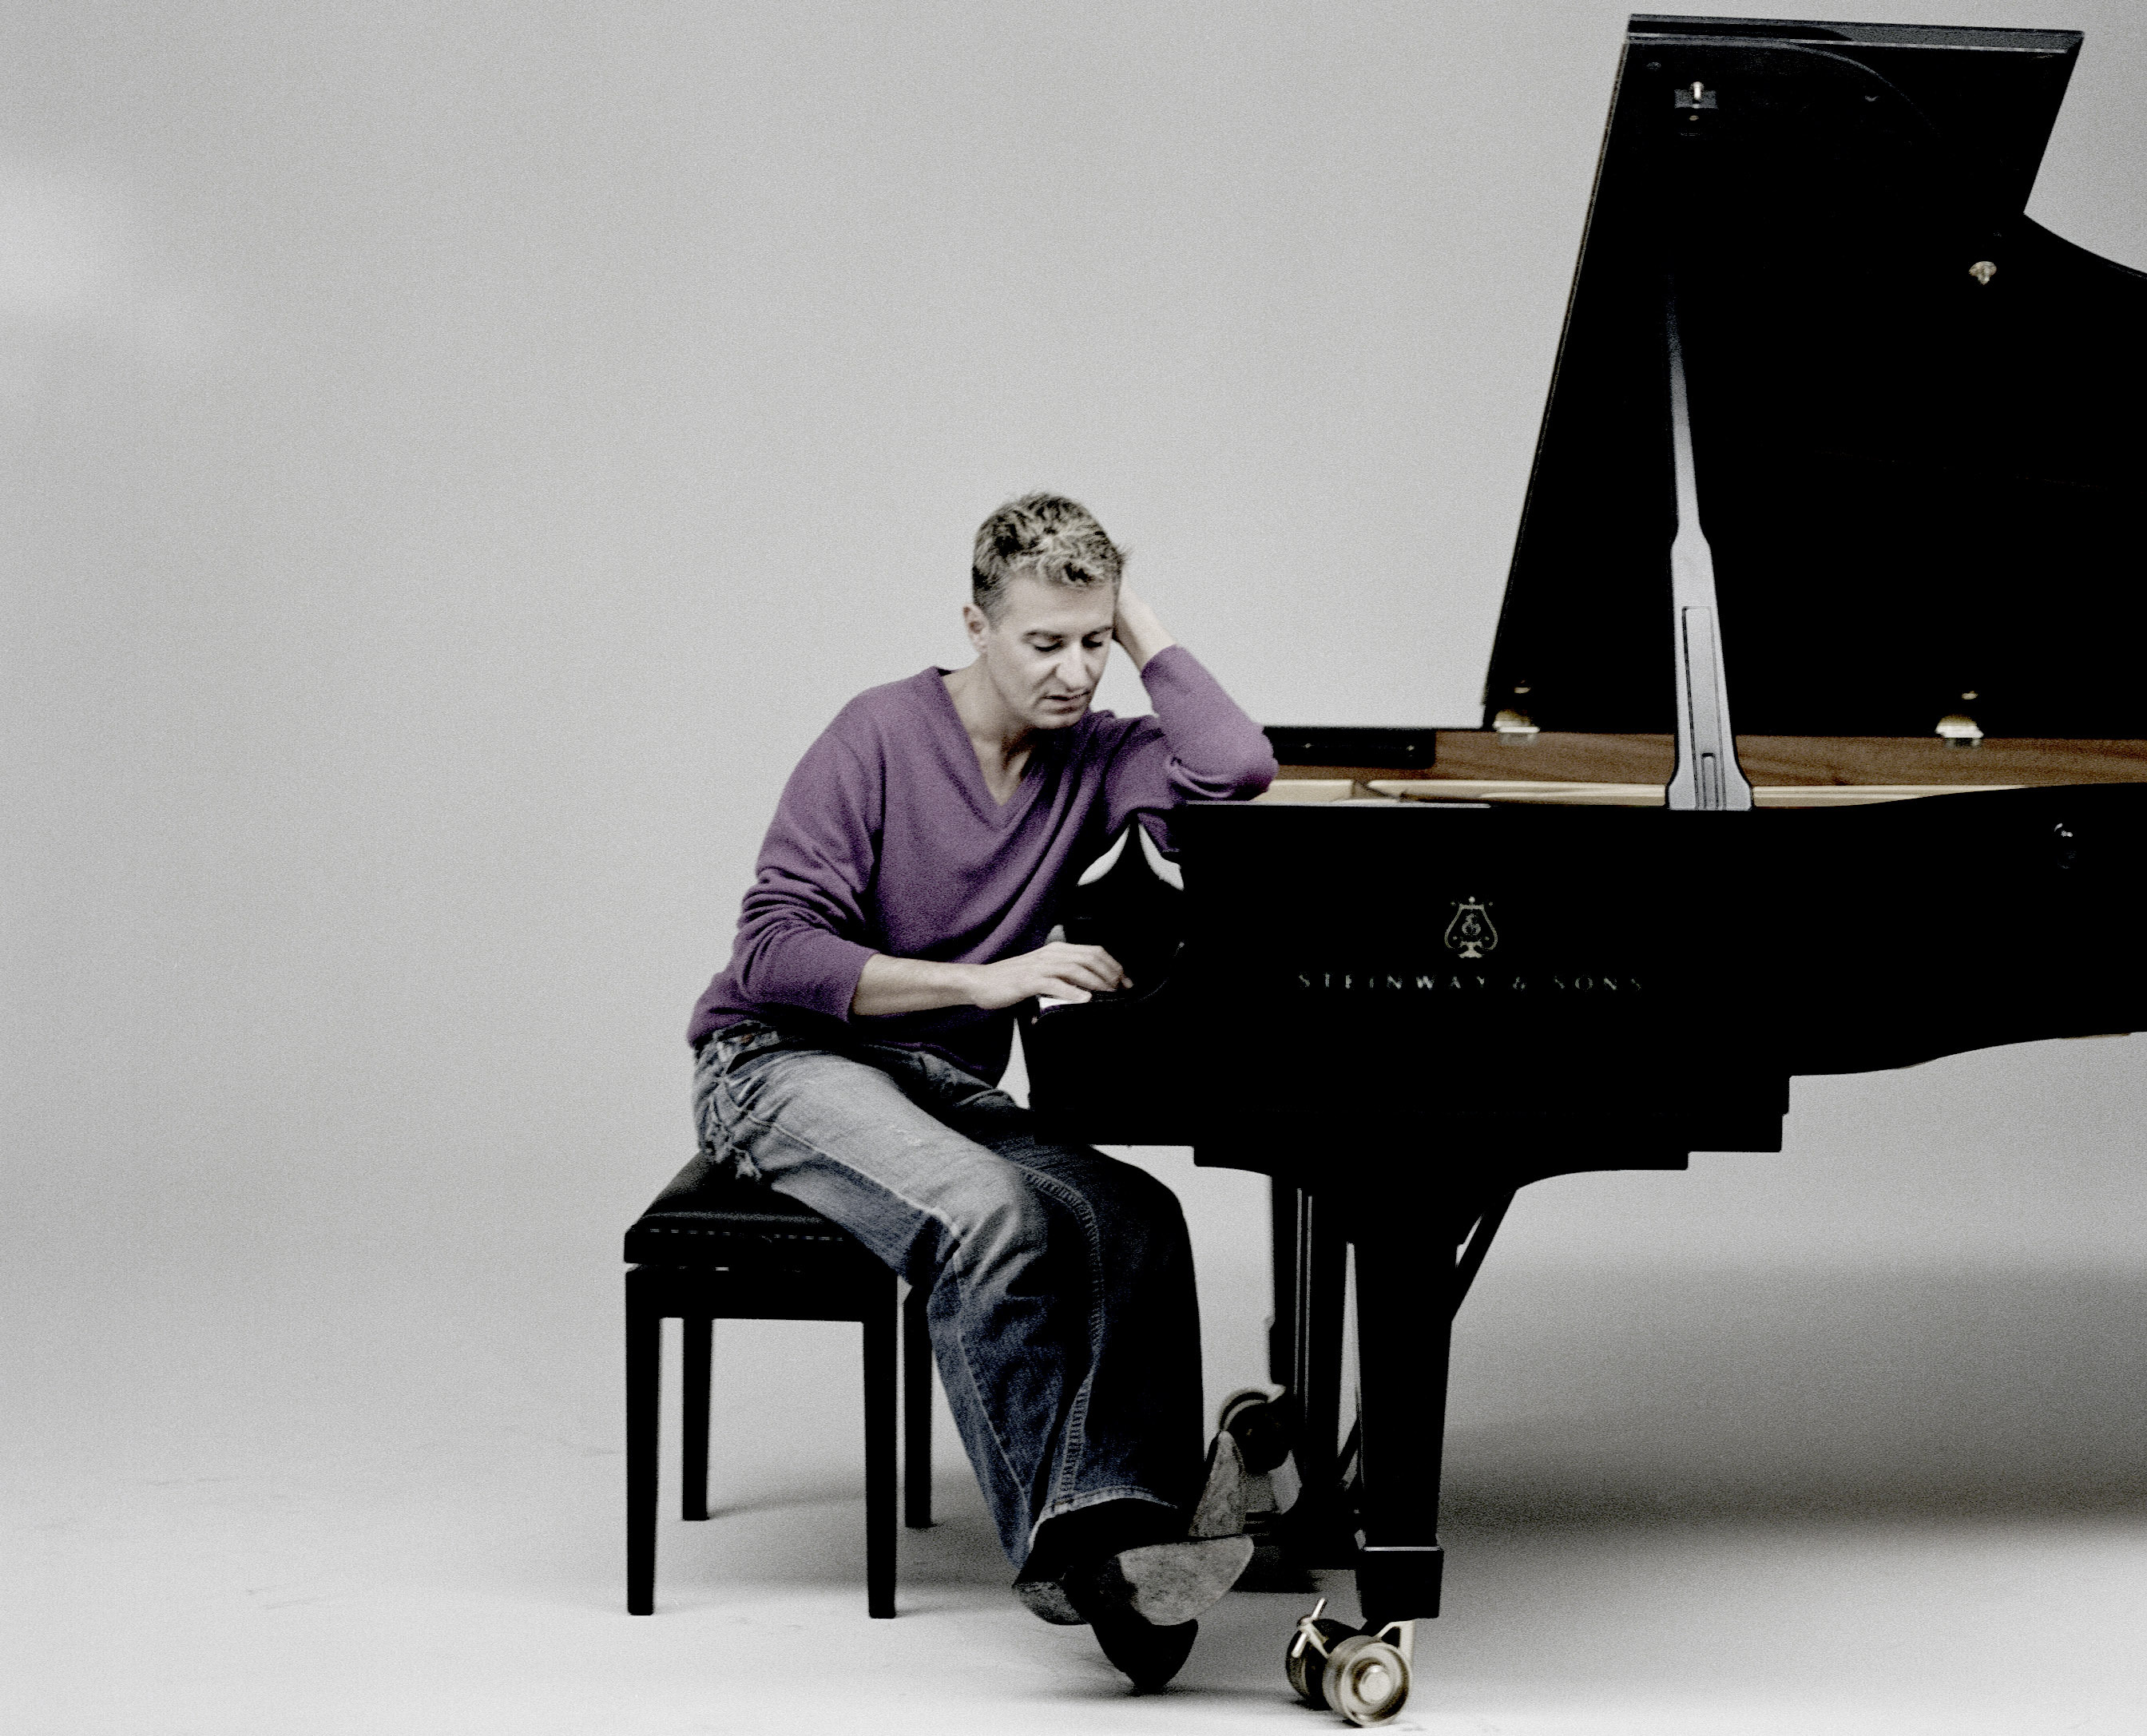 Man leaning on piano